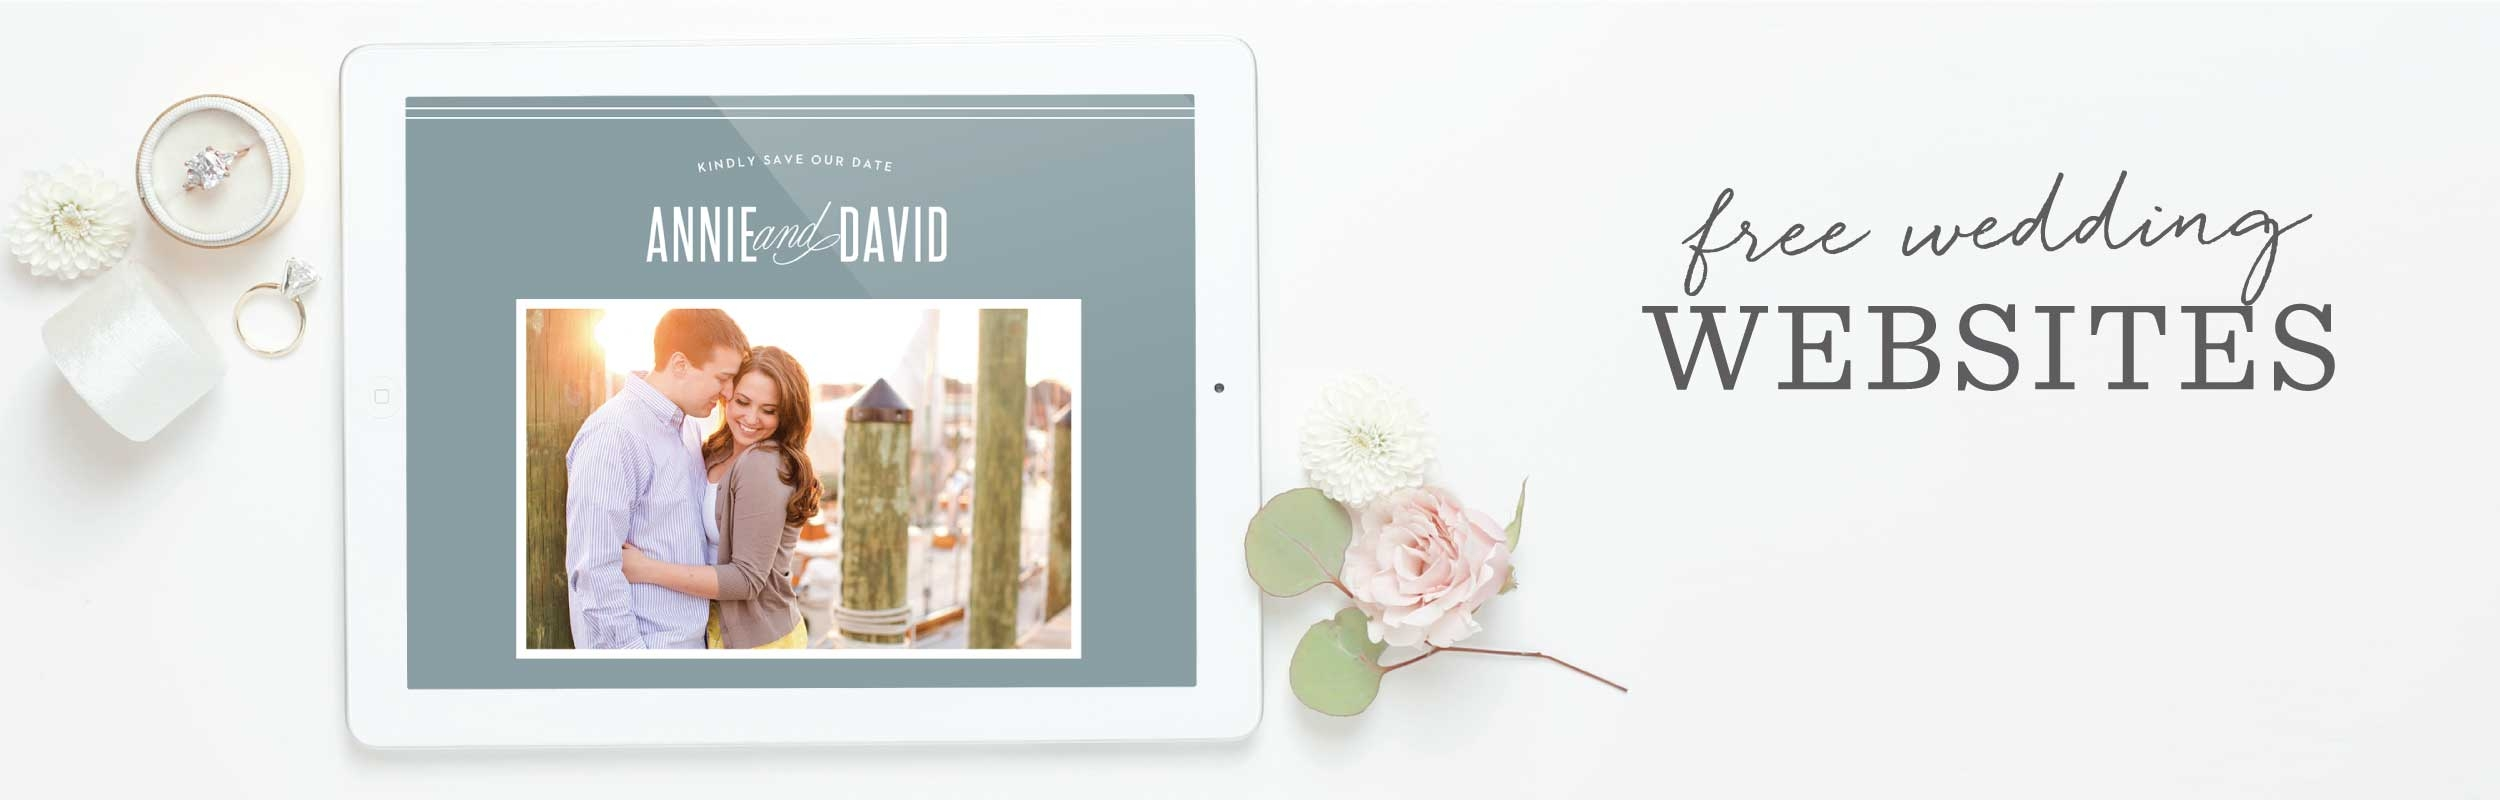 100% Free Wedding Websites | Match Your Colors & Style! - Basic Invite